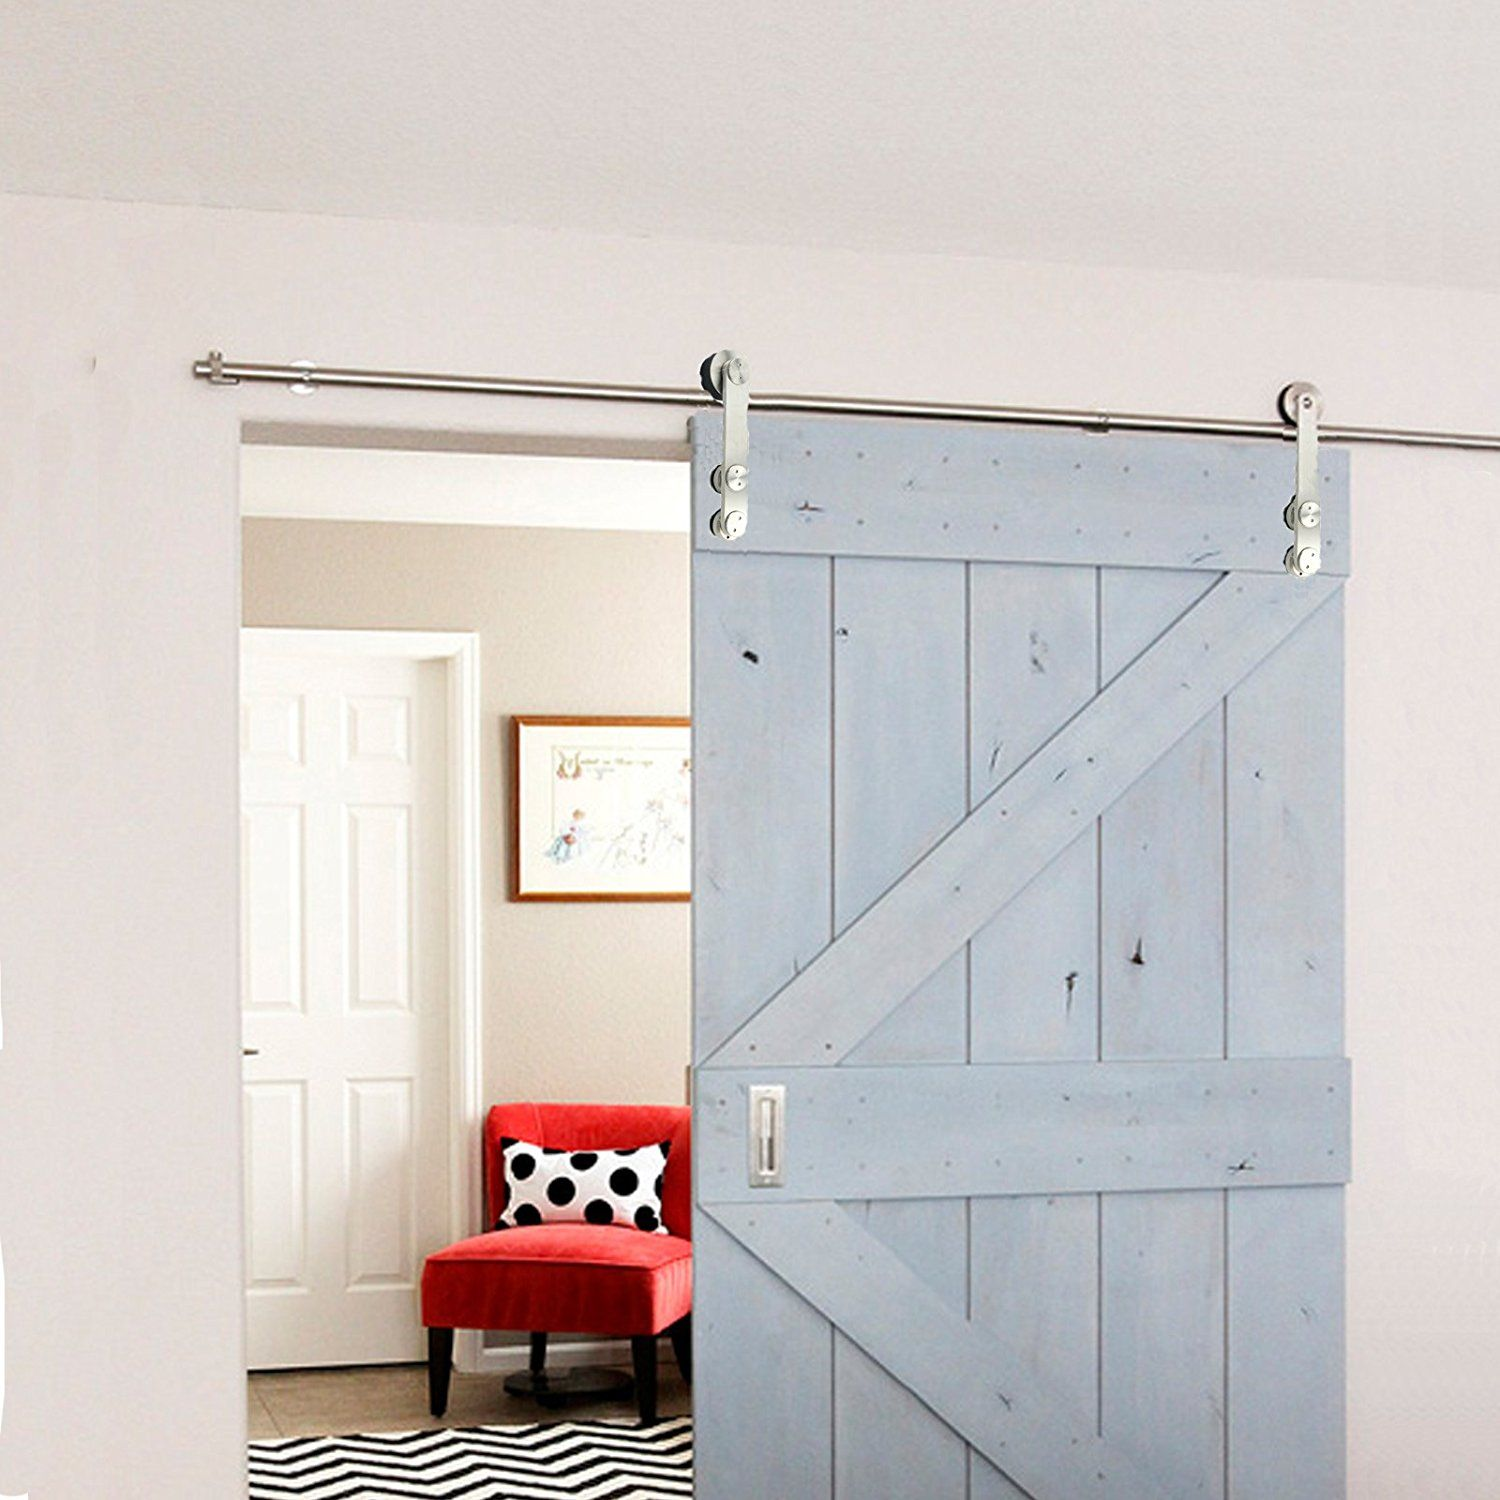 usa in pulls doors size quiet and modern sliding of stainless contemporary strongar handles made code coupon glide hardware door barn large steel track